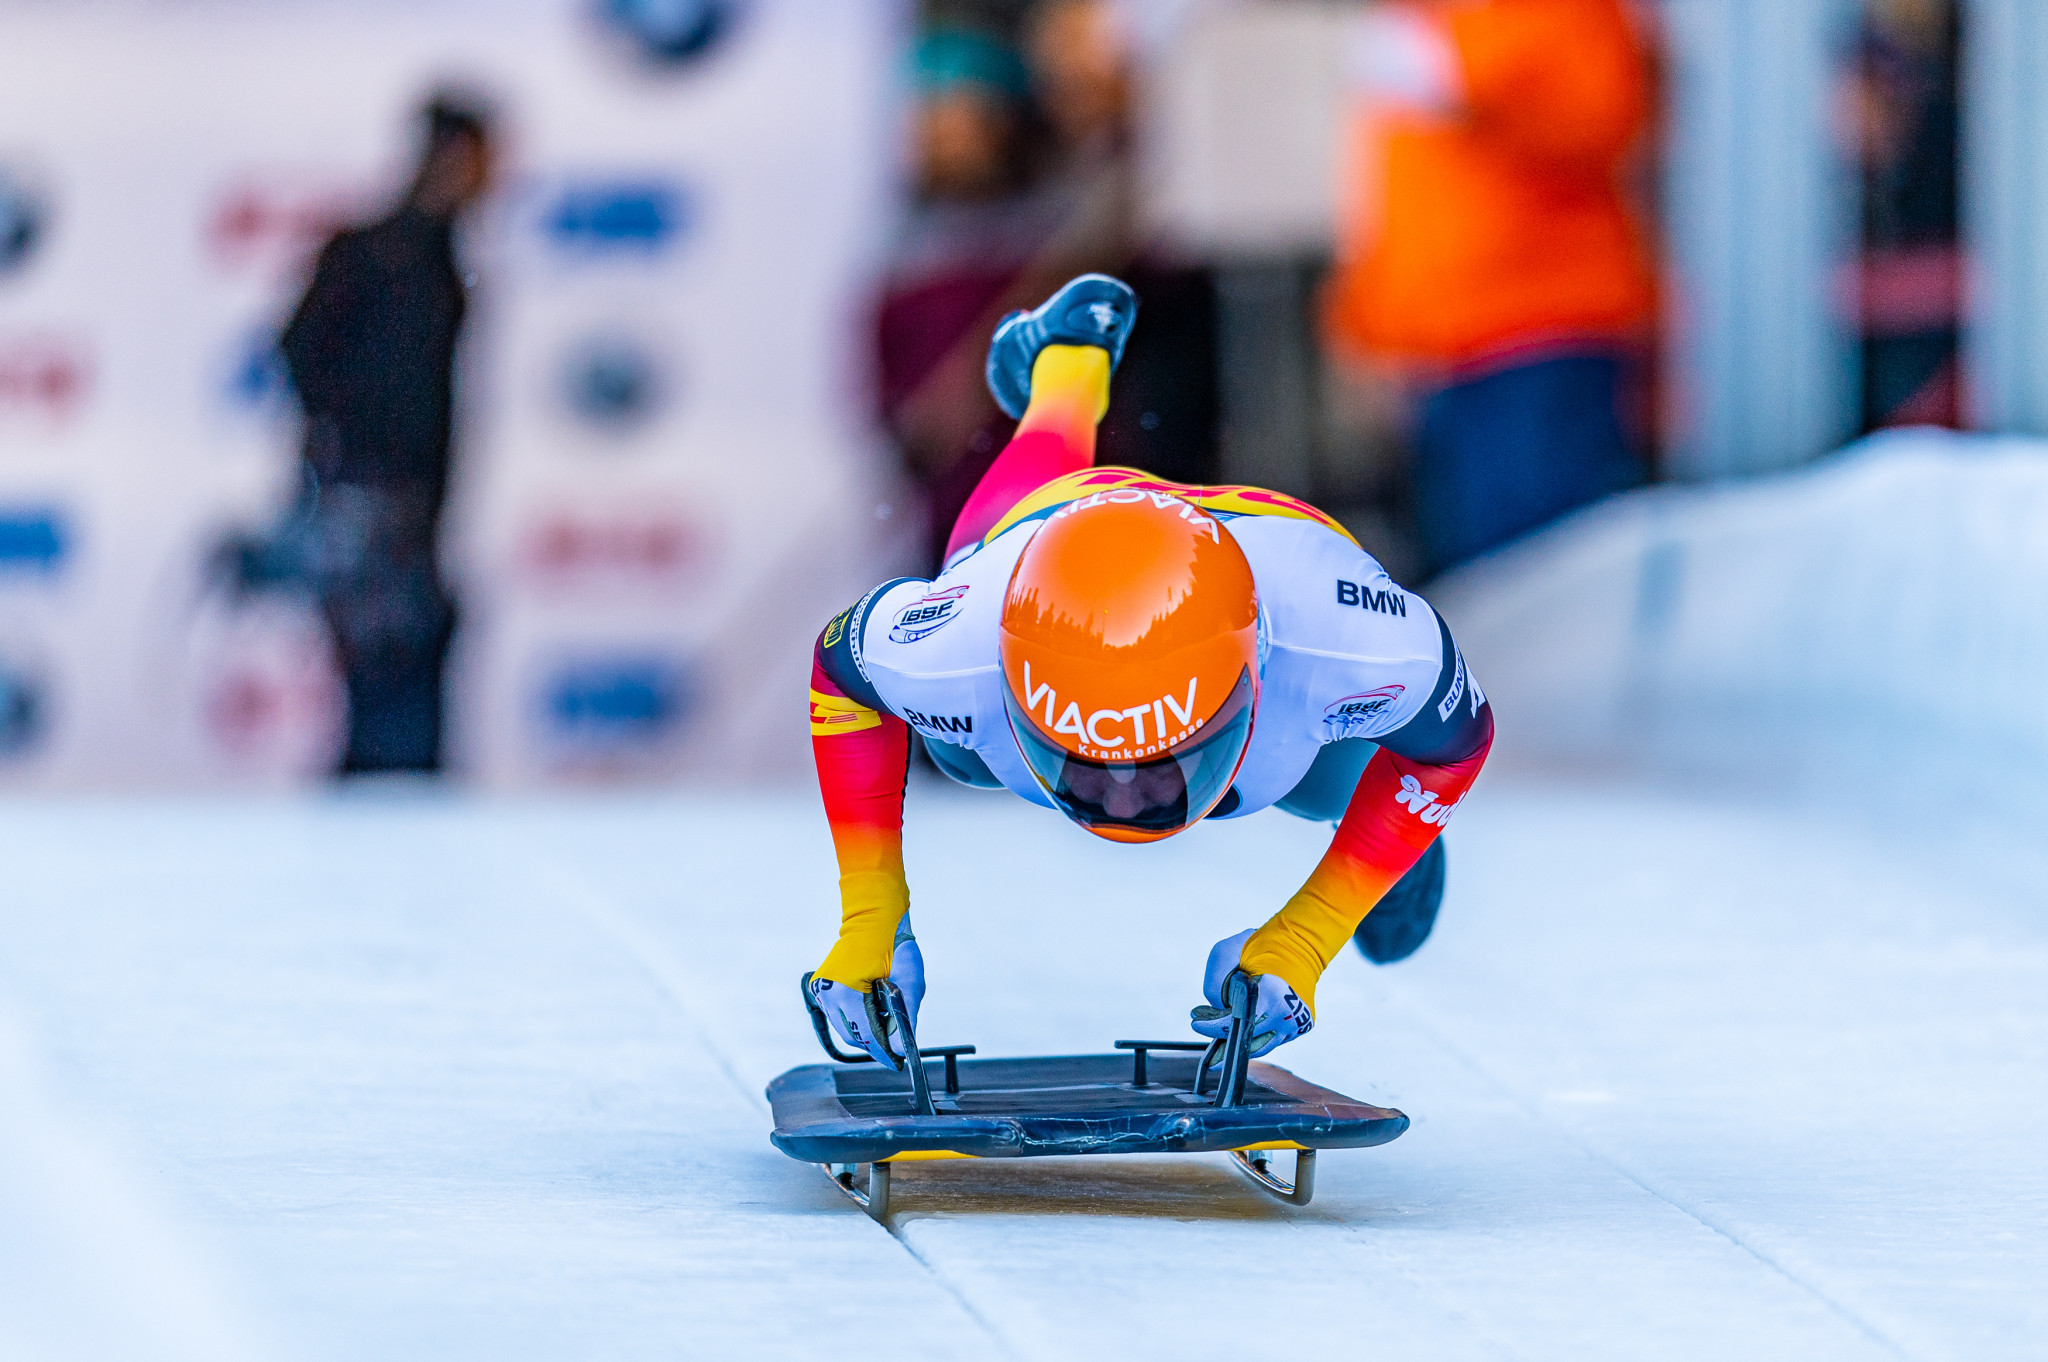 IBSF to find new location for World Cup final after Beijing 2022 test event cancelled